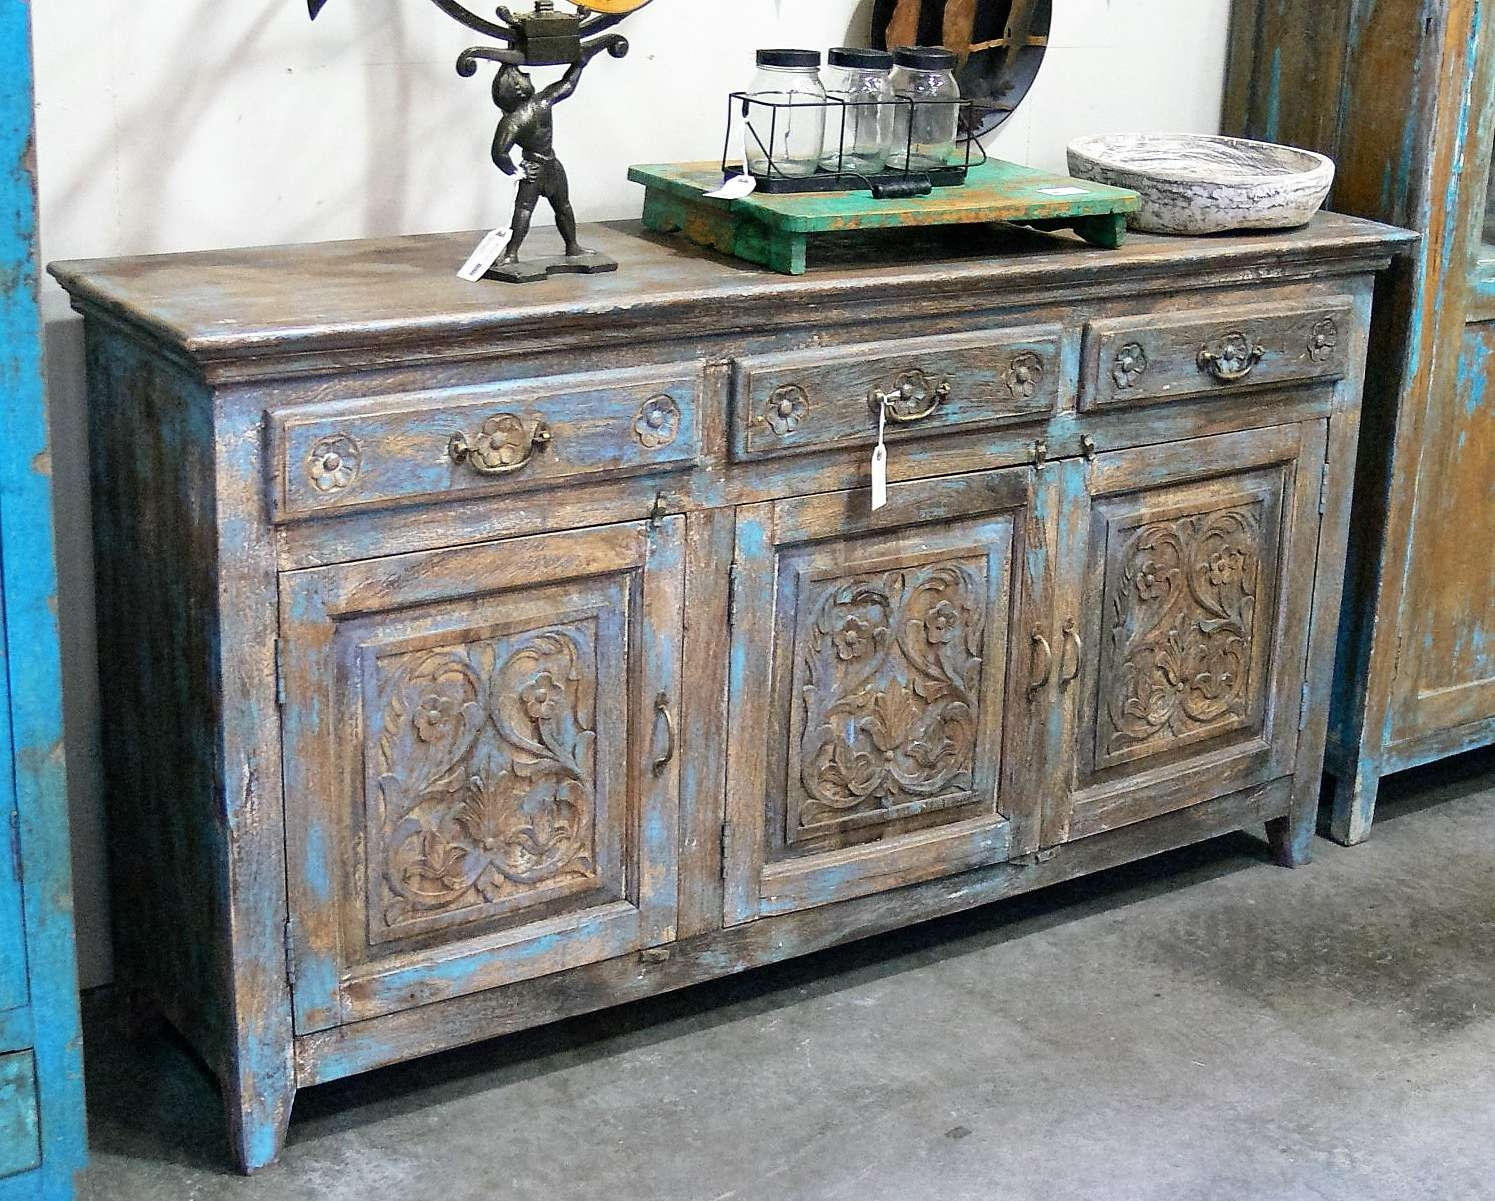 Sideboards & Buffets » Market Imports – Home, Patio, Antiques Regarding Sideboards And Buffets (View 15 of 20)